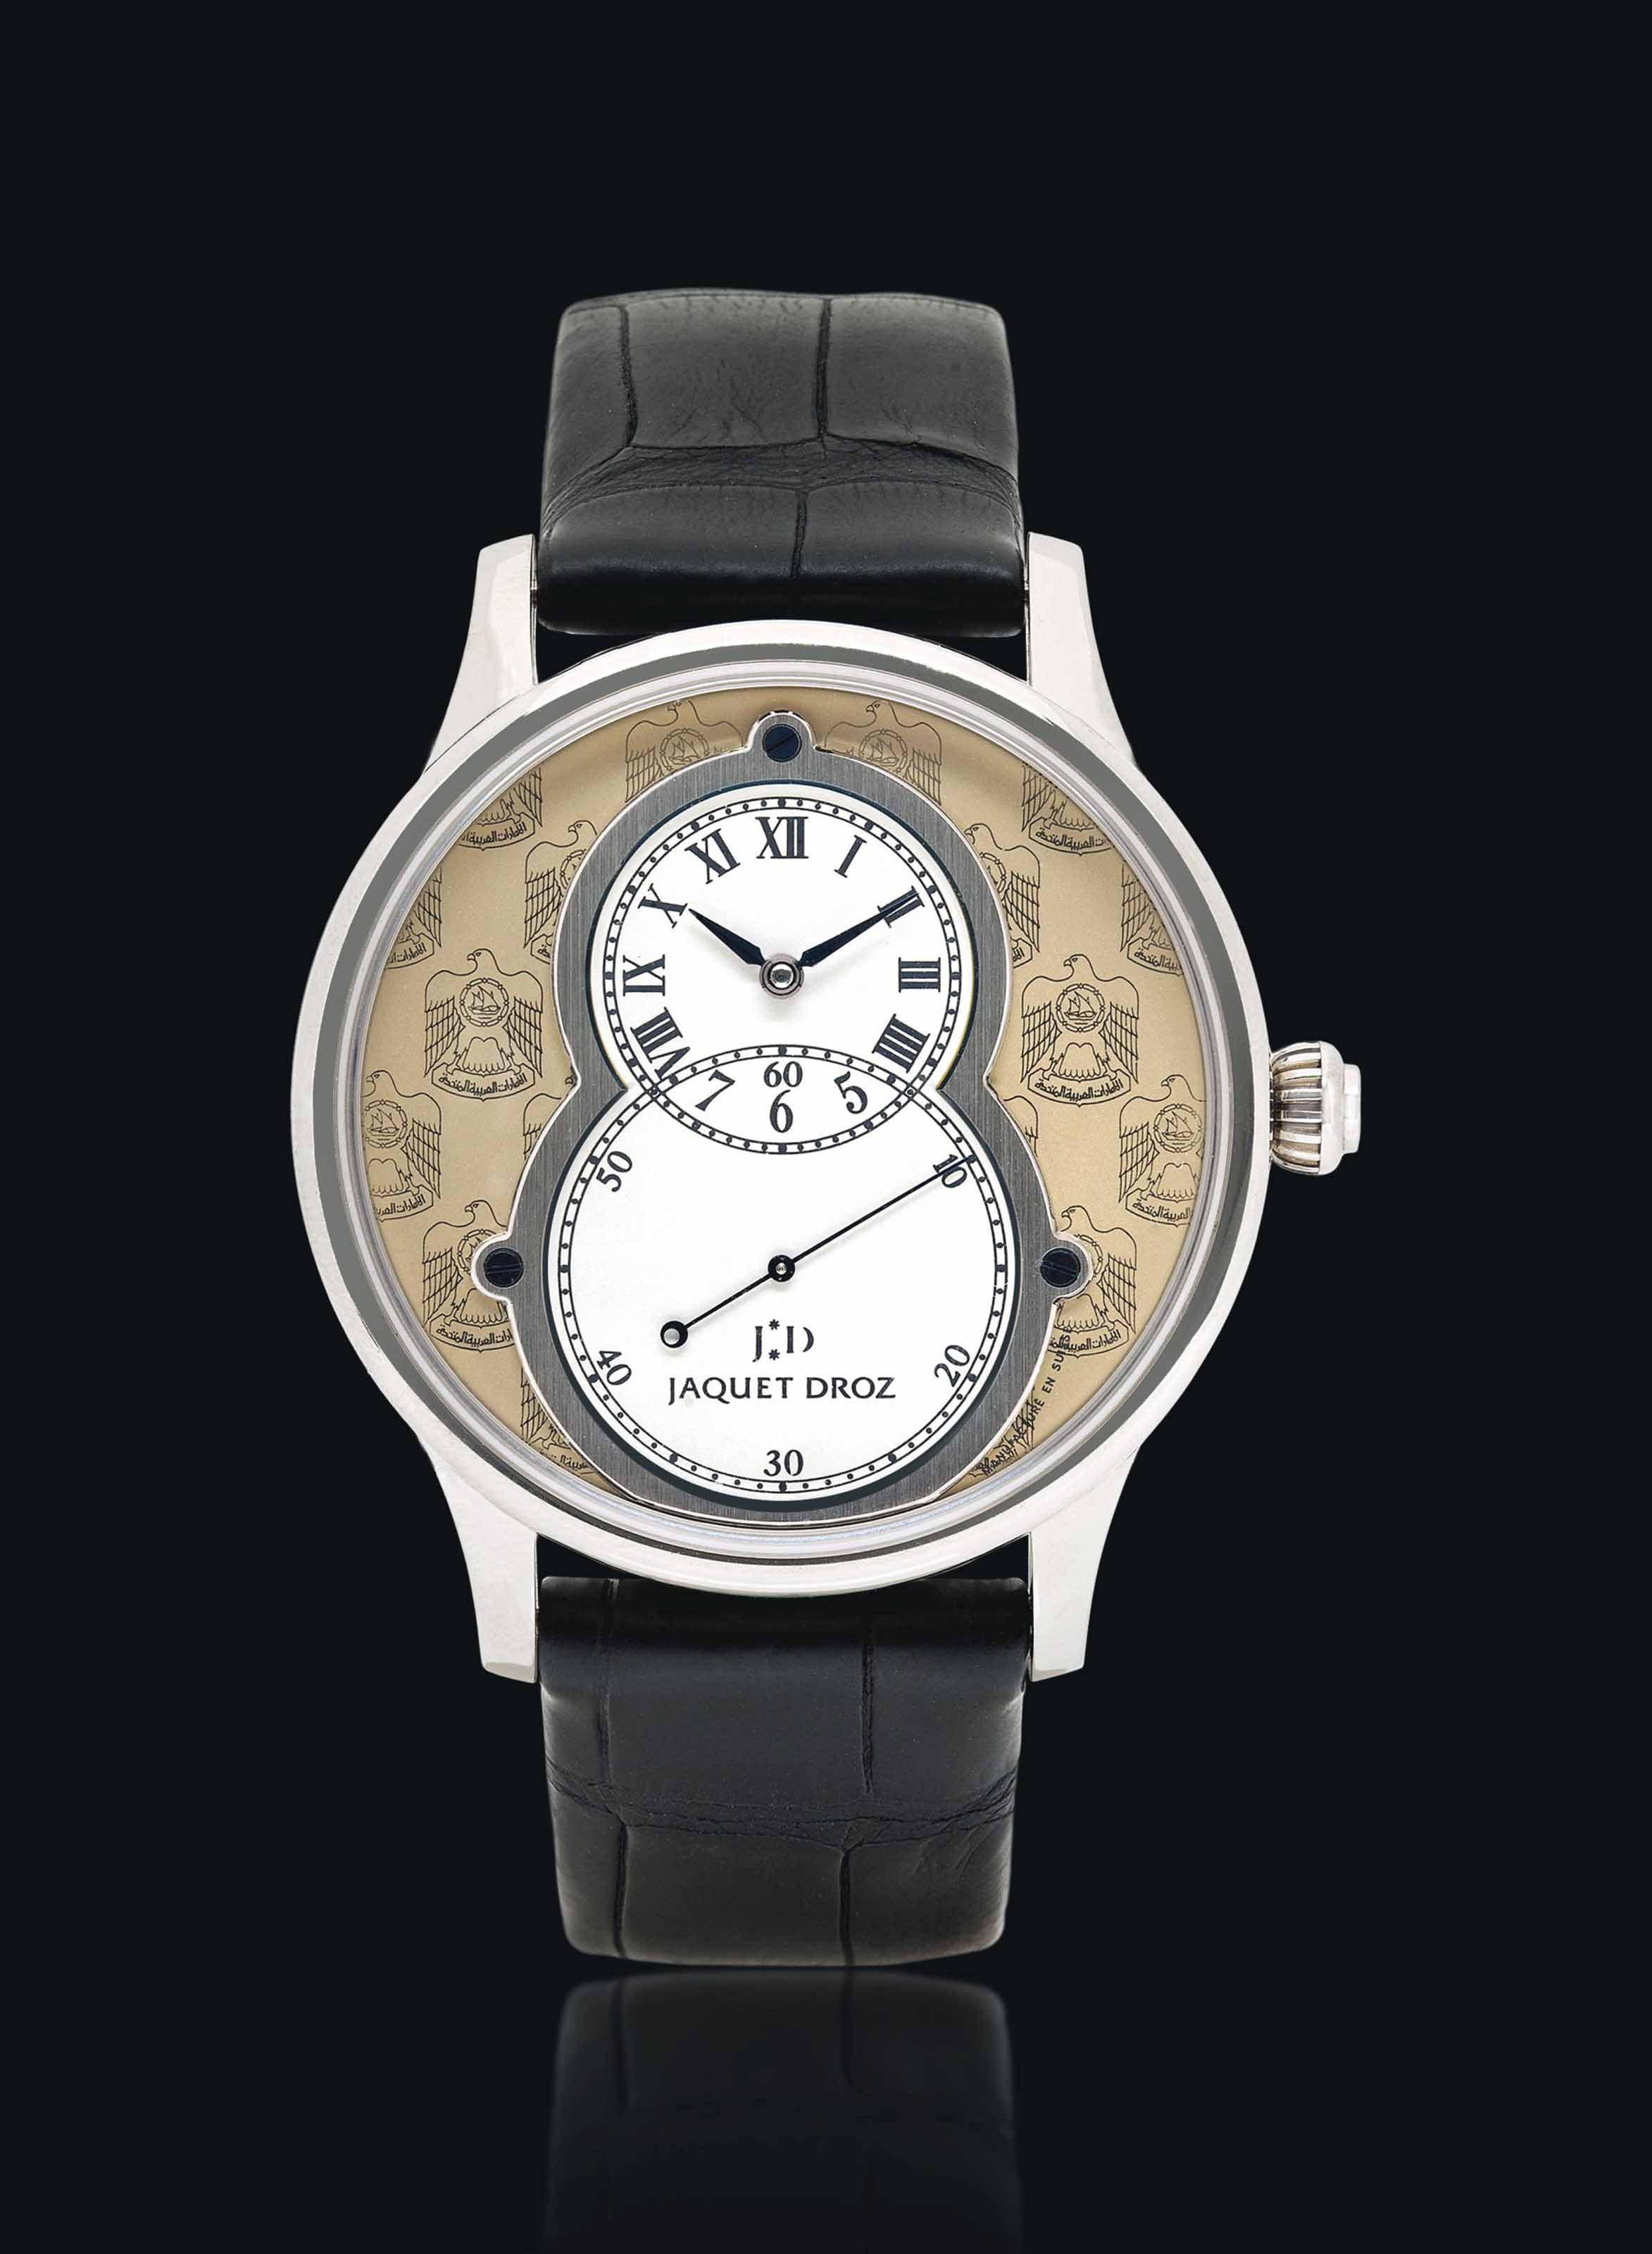 JAQUET DROZ. A FINE AND RARE 18K WHITE GOLD LIMITED EDITION AUTOMATIC WRISTWATCH WITH OFF-CENTERED TIME DISPLAY, MADE FOR THE UNITED ARAB EMIRATES